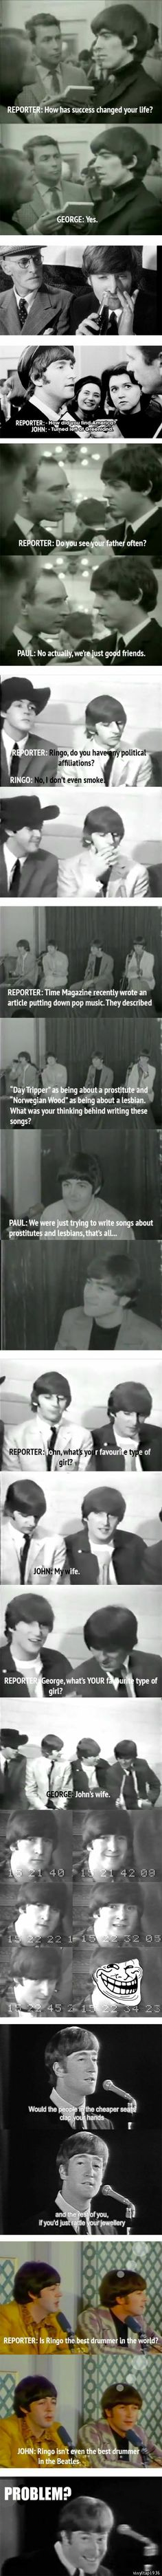 Oh these guys..lol...who doesn't love the Beatles?